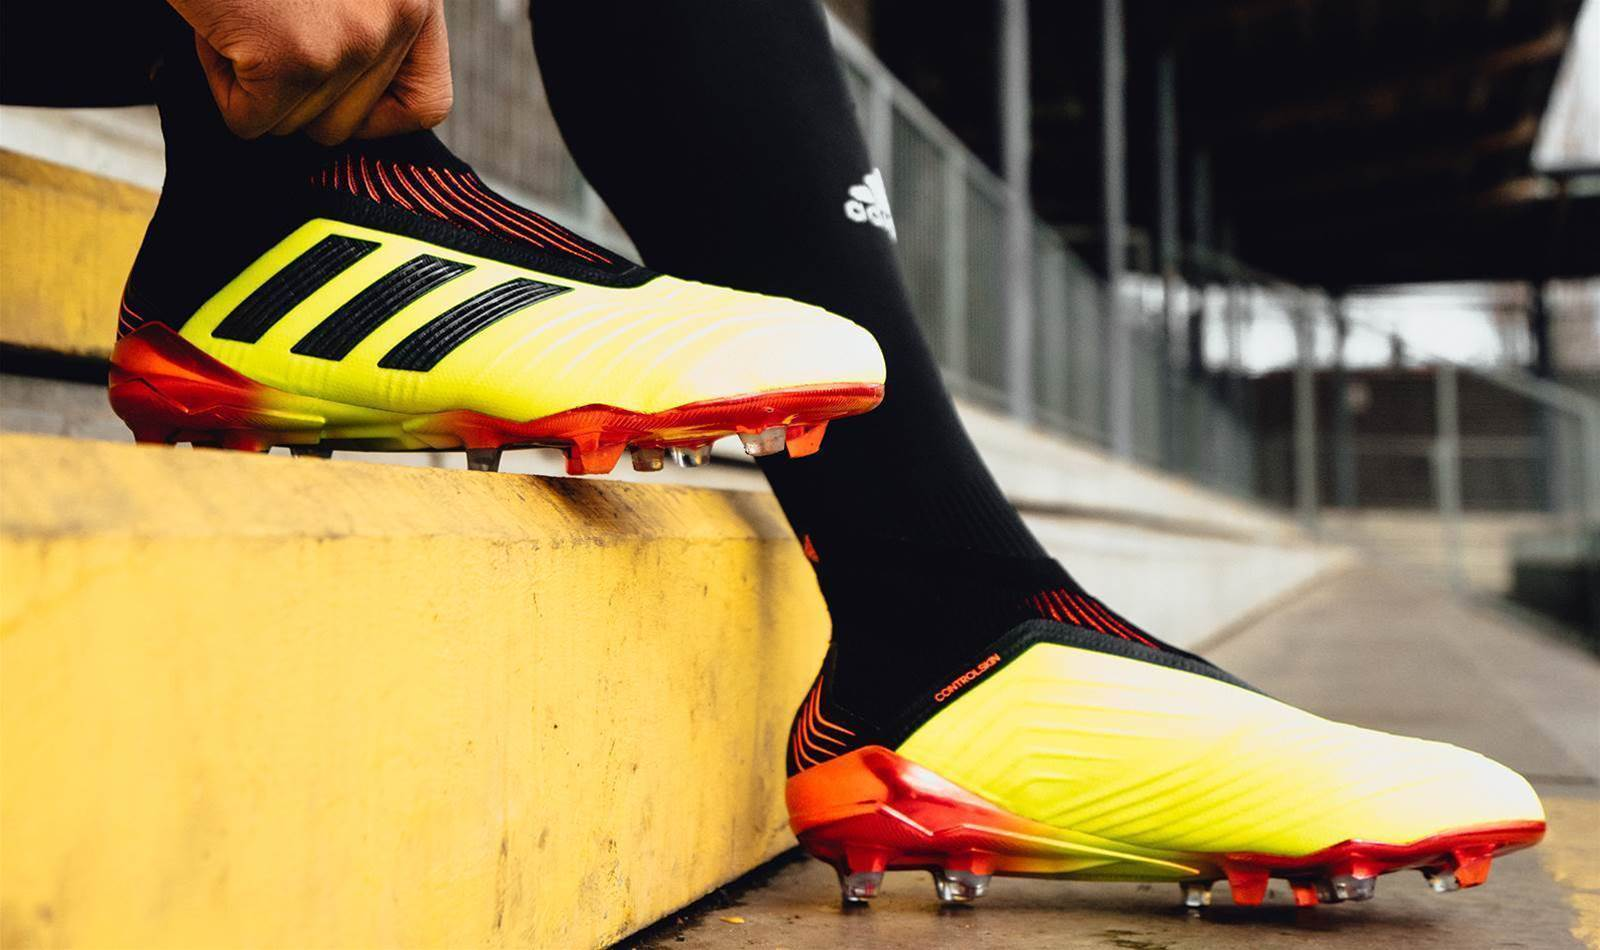 adidas unveil stunning Energy Mode Predator 18+